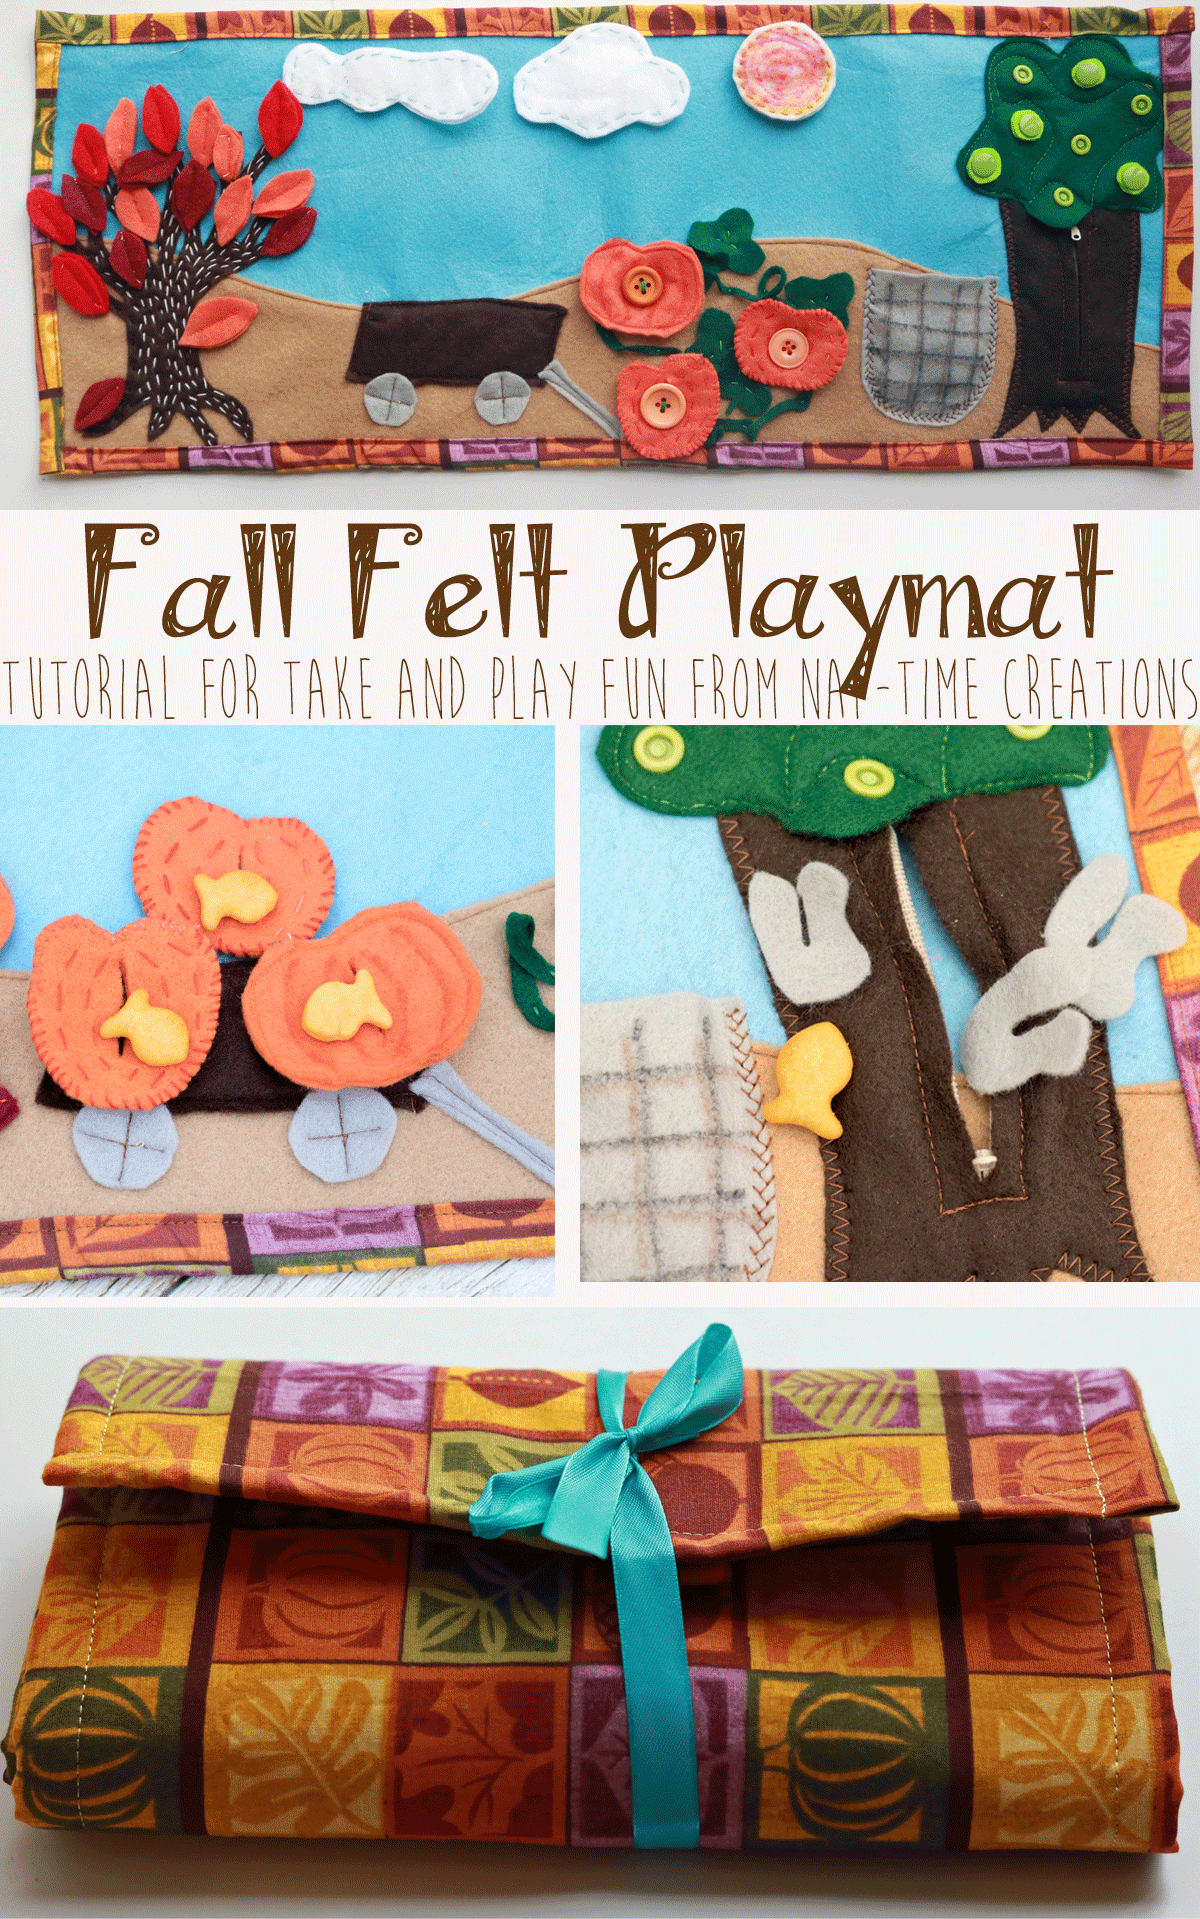 fall felt playmat tutorial-for-take-and-play-fun-from-nap-time-creations